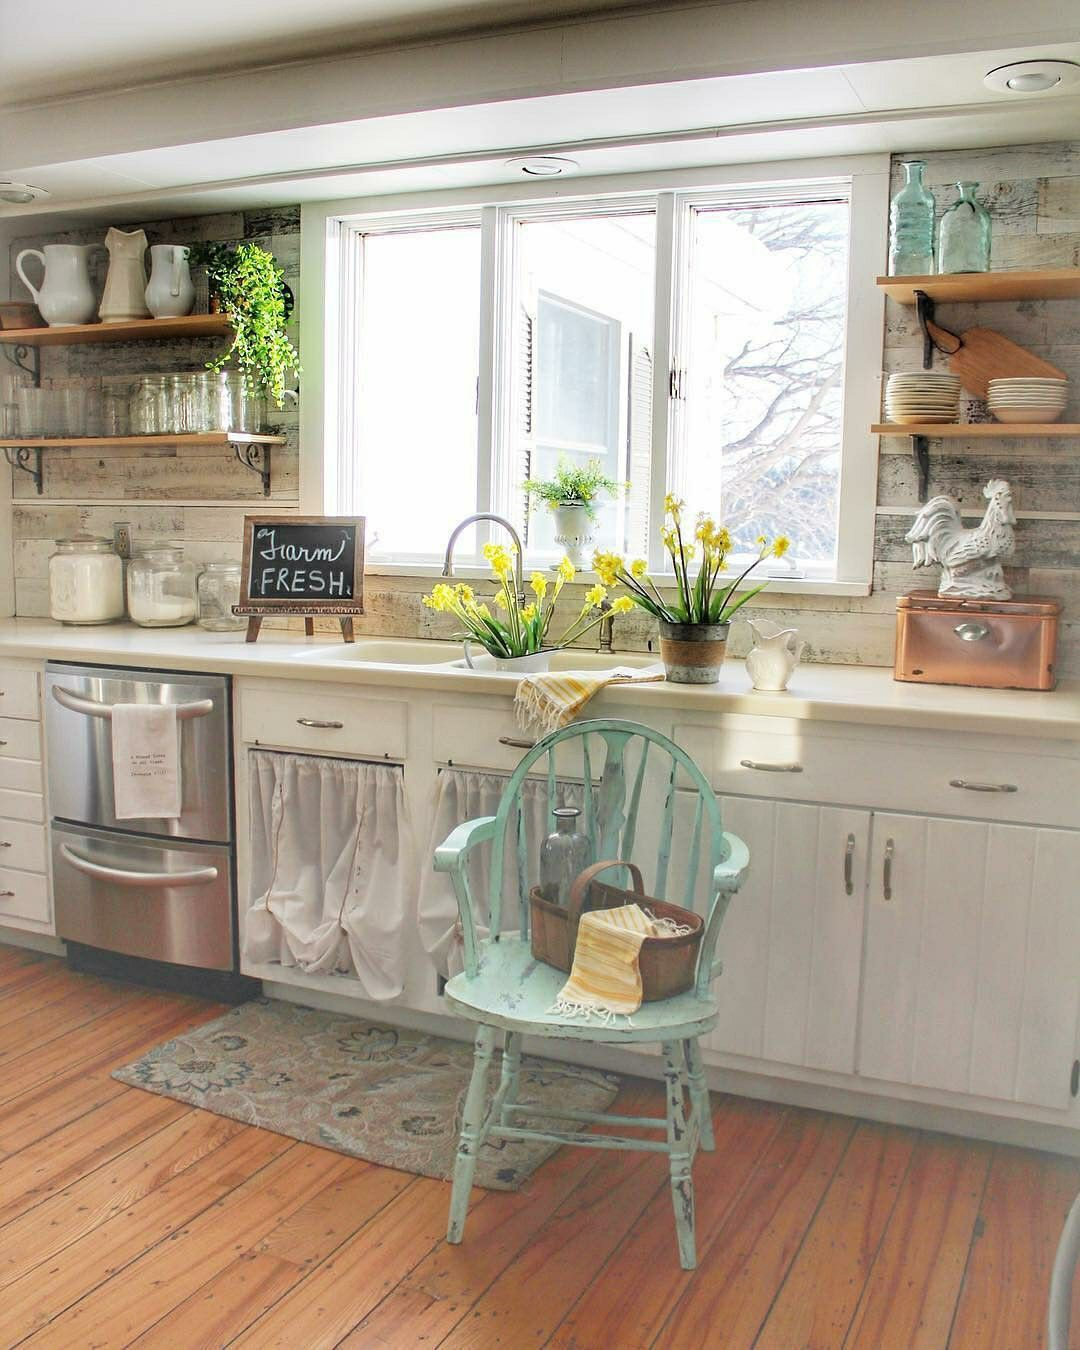 country kitchen wood kitchen backsplash farmhouse style kitchen white kitchen backsplash on farmhouse kitchen backsplash id=70803